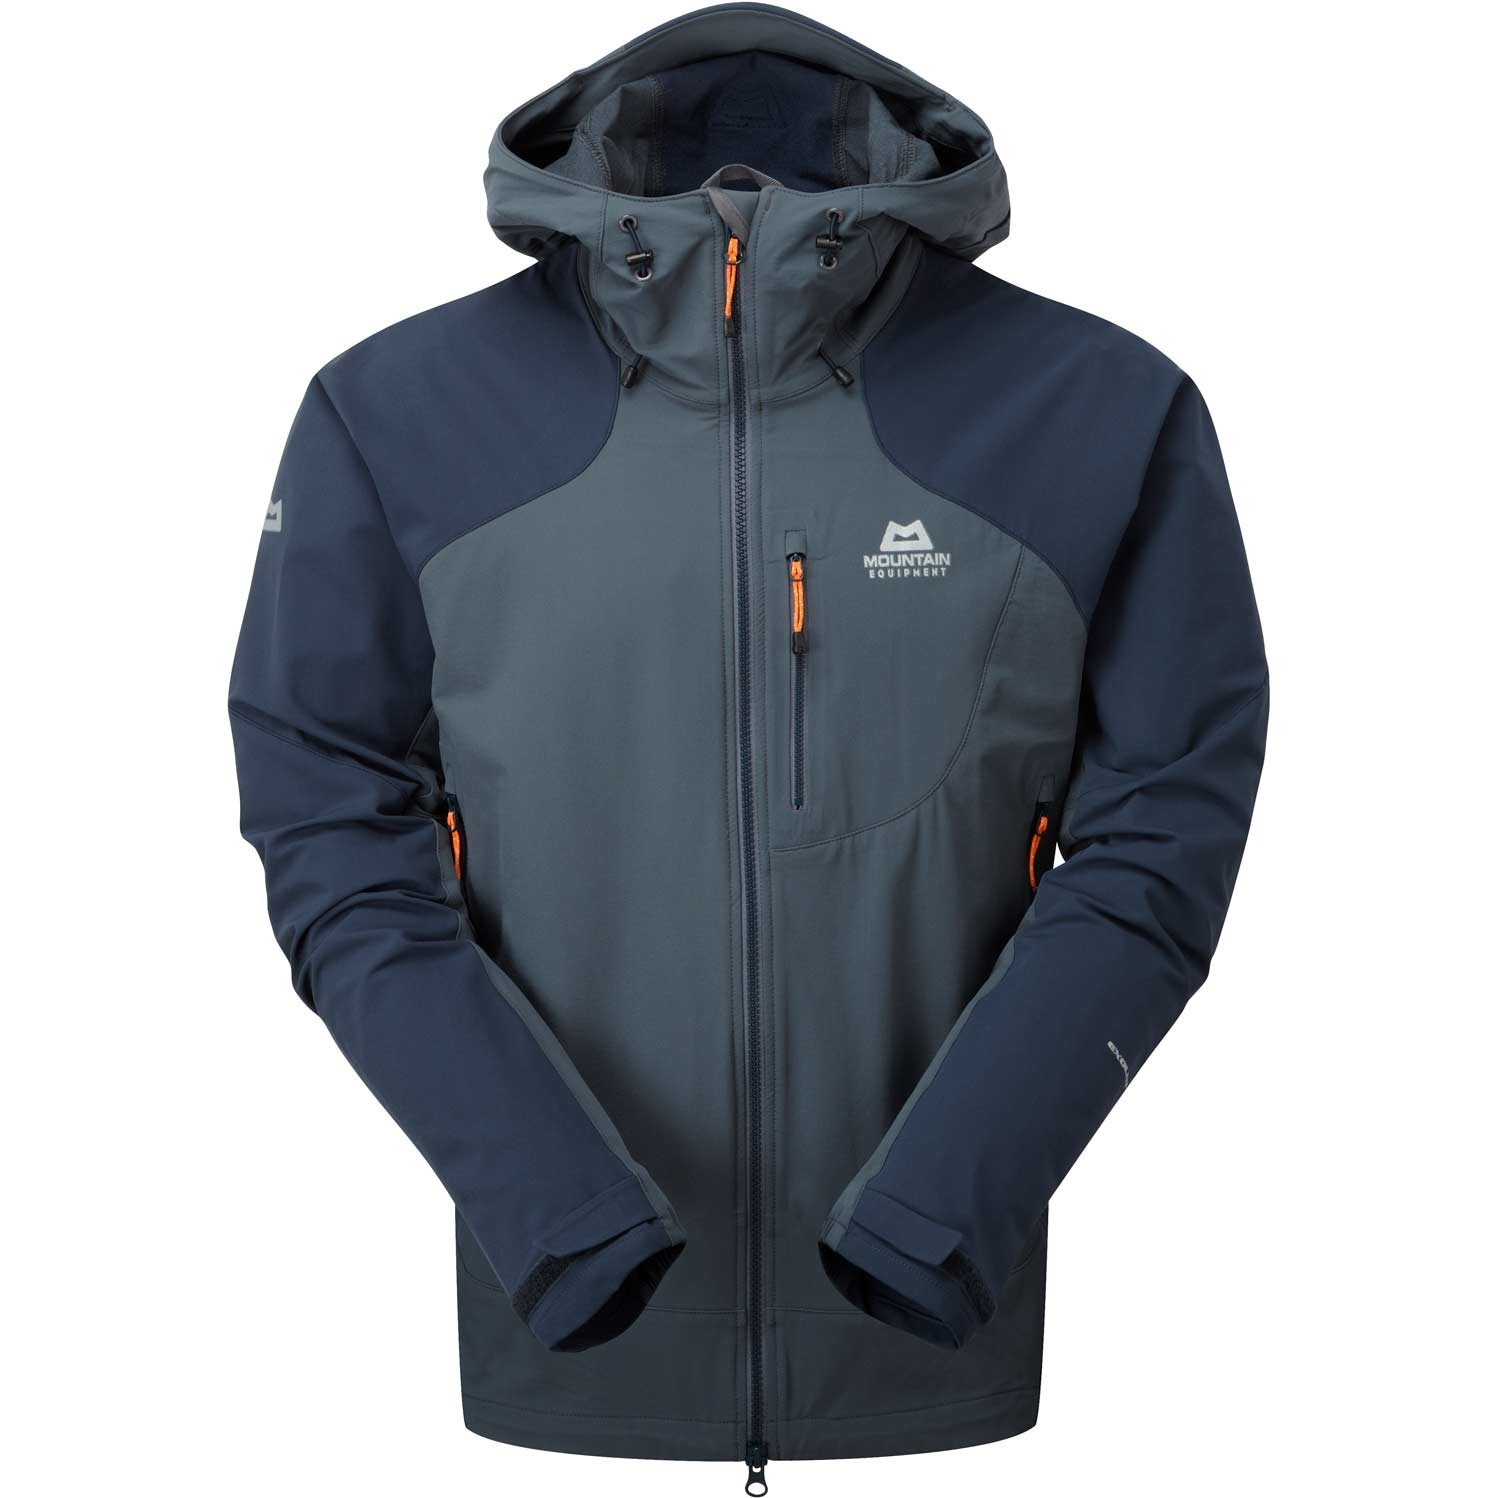 Mountain Equipment Frontier Men's Hooded Softshell Jacket - Ombre/Cosmos